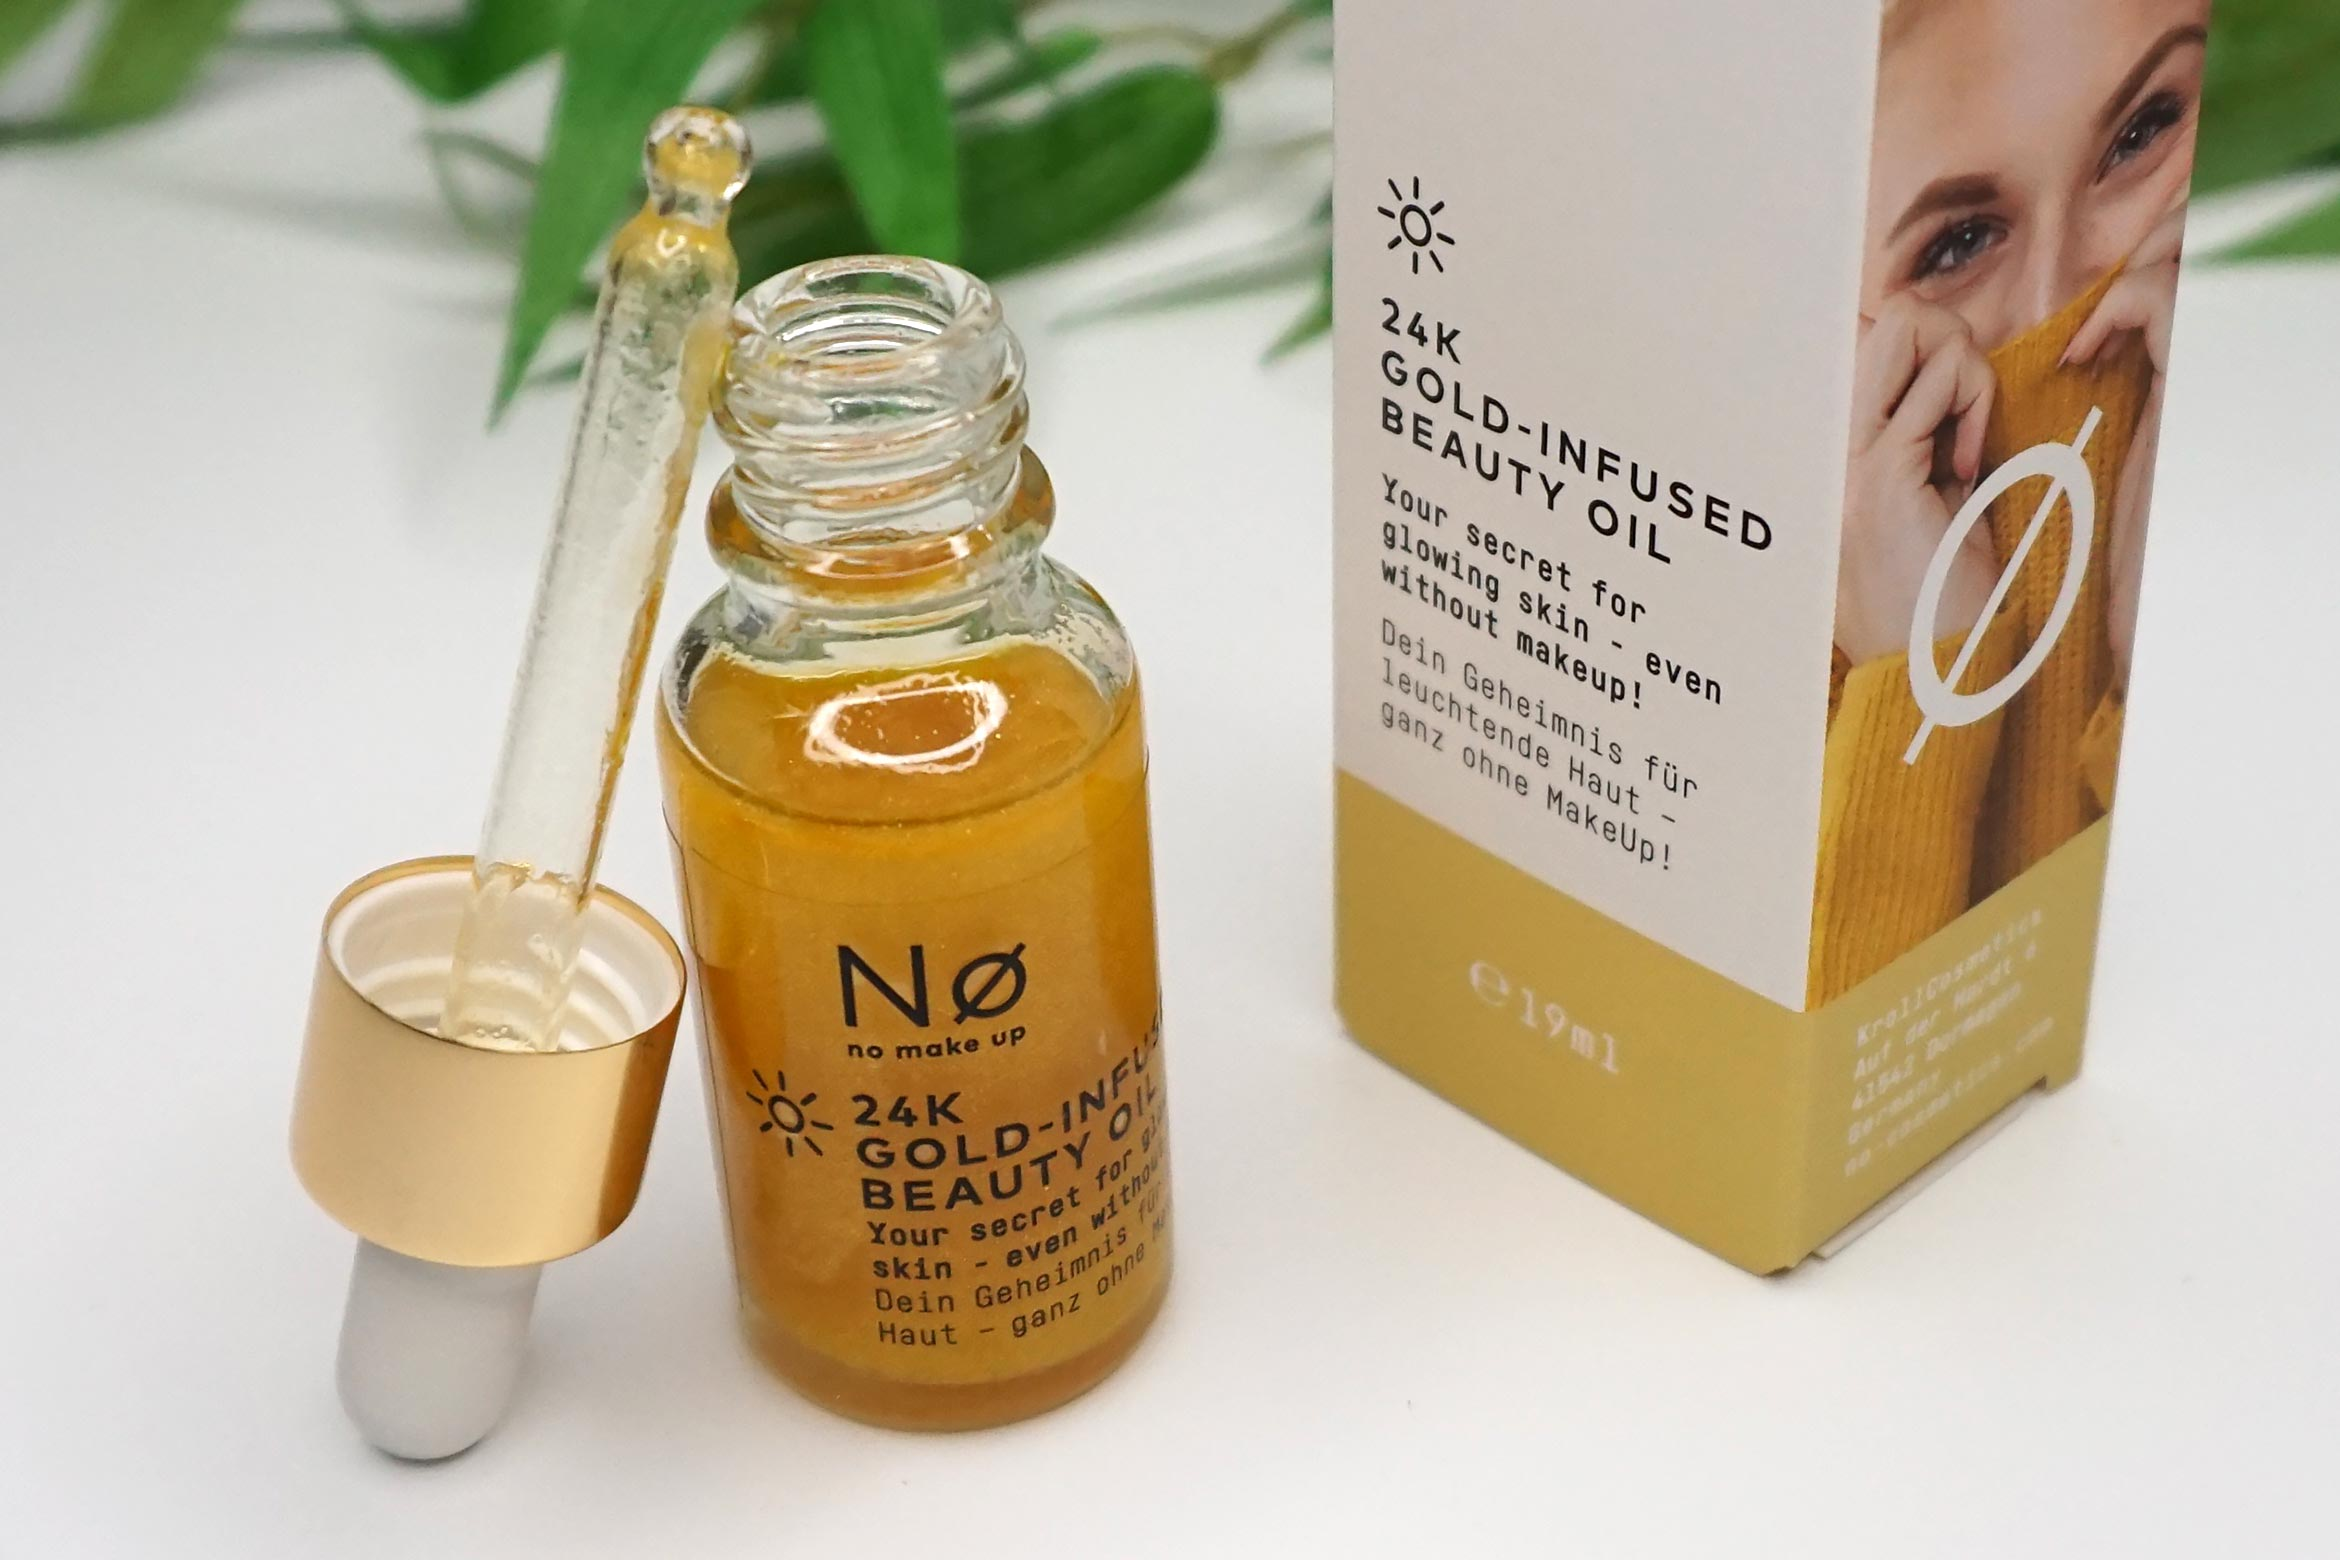 no-make-up-24k-gold-infused-beauty-oil-review-1